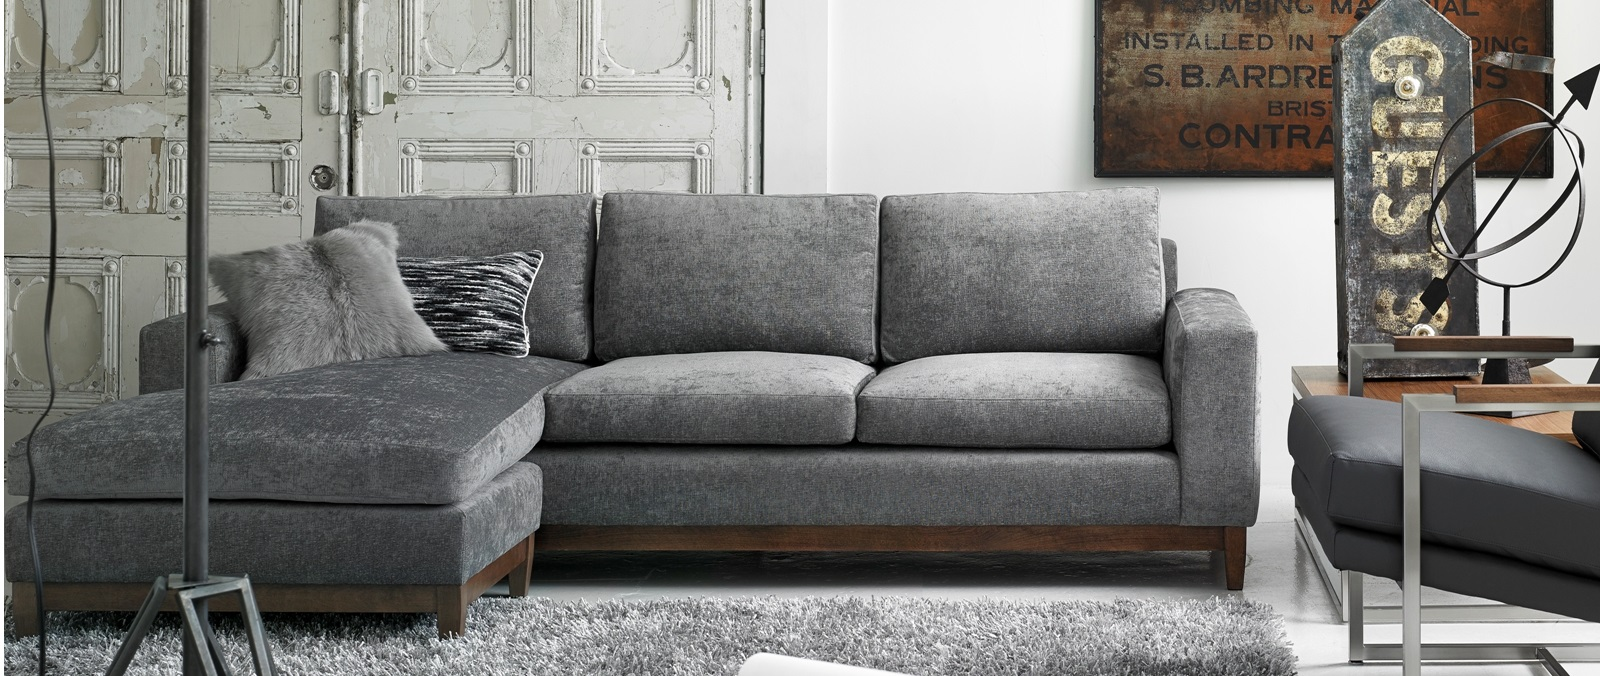 modern furniture store montreal and ottawa  mikazahome - sofa or sectional it's your choice